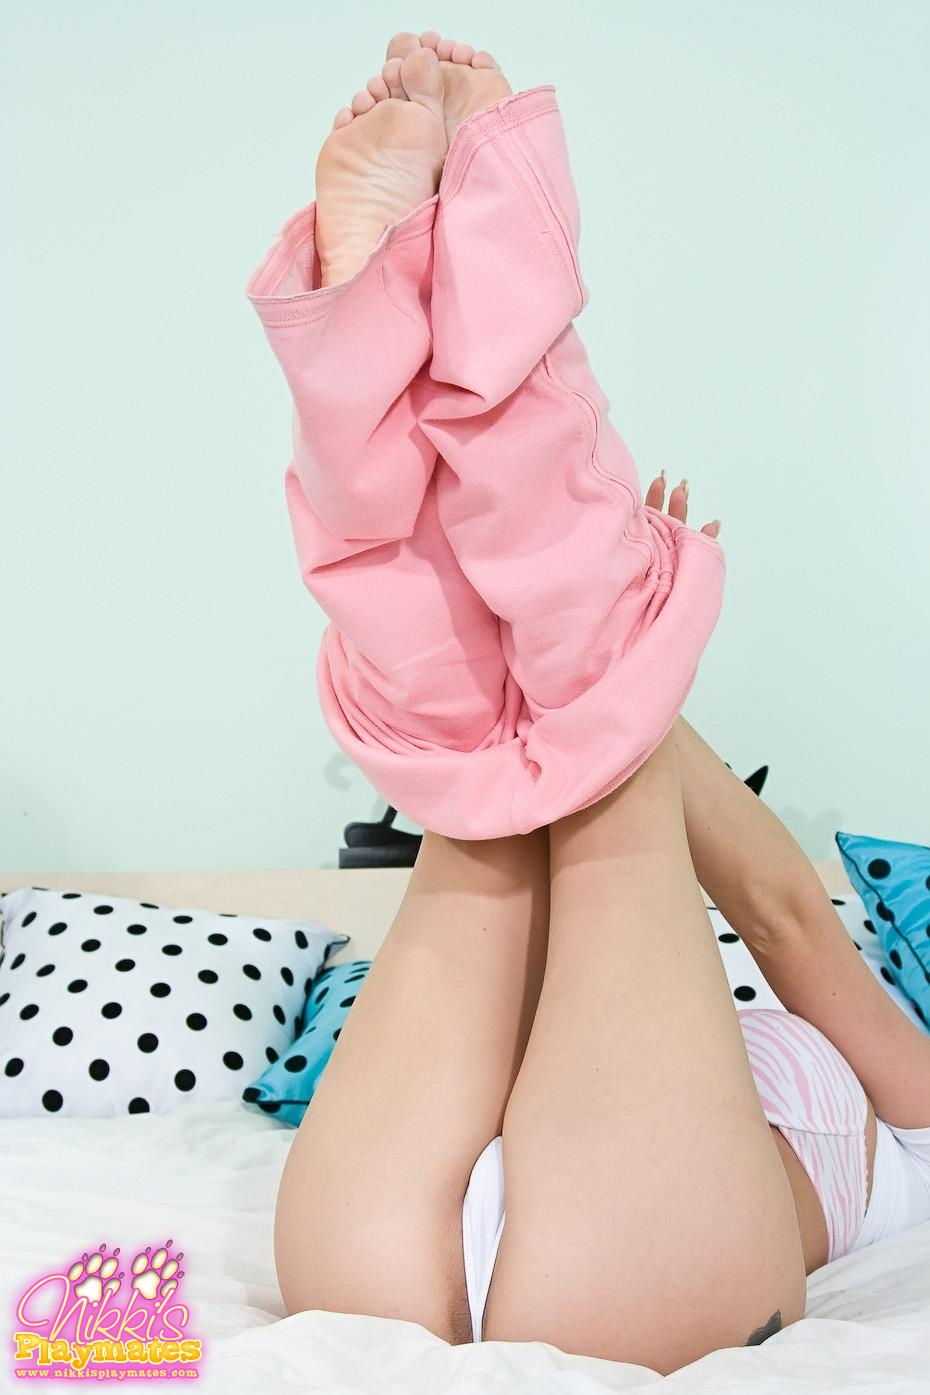 She's lifting her legs up to remove her pink tracksuit bottoms